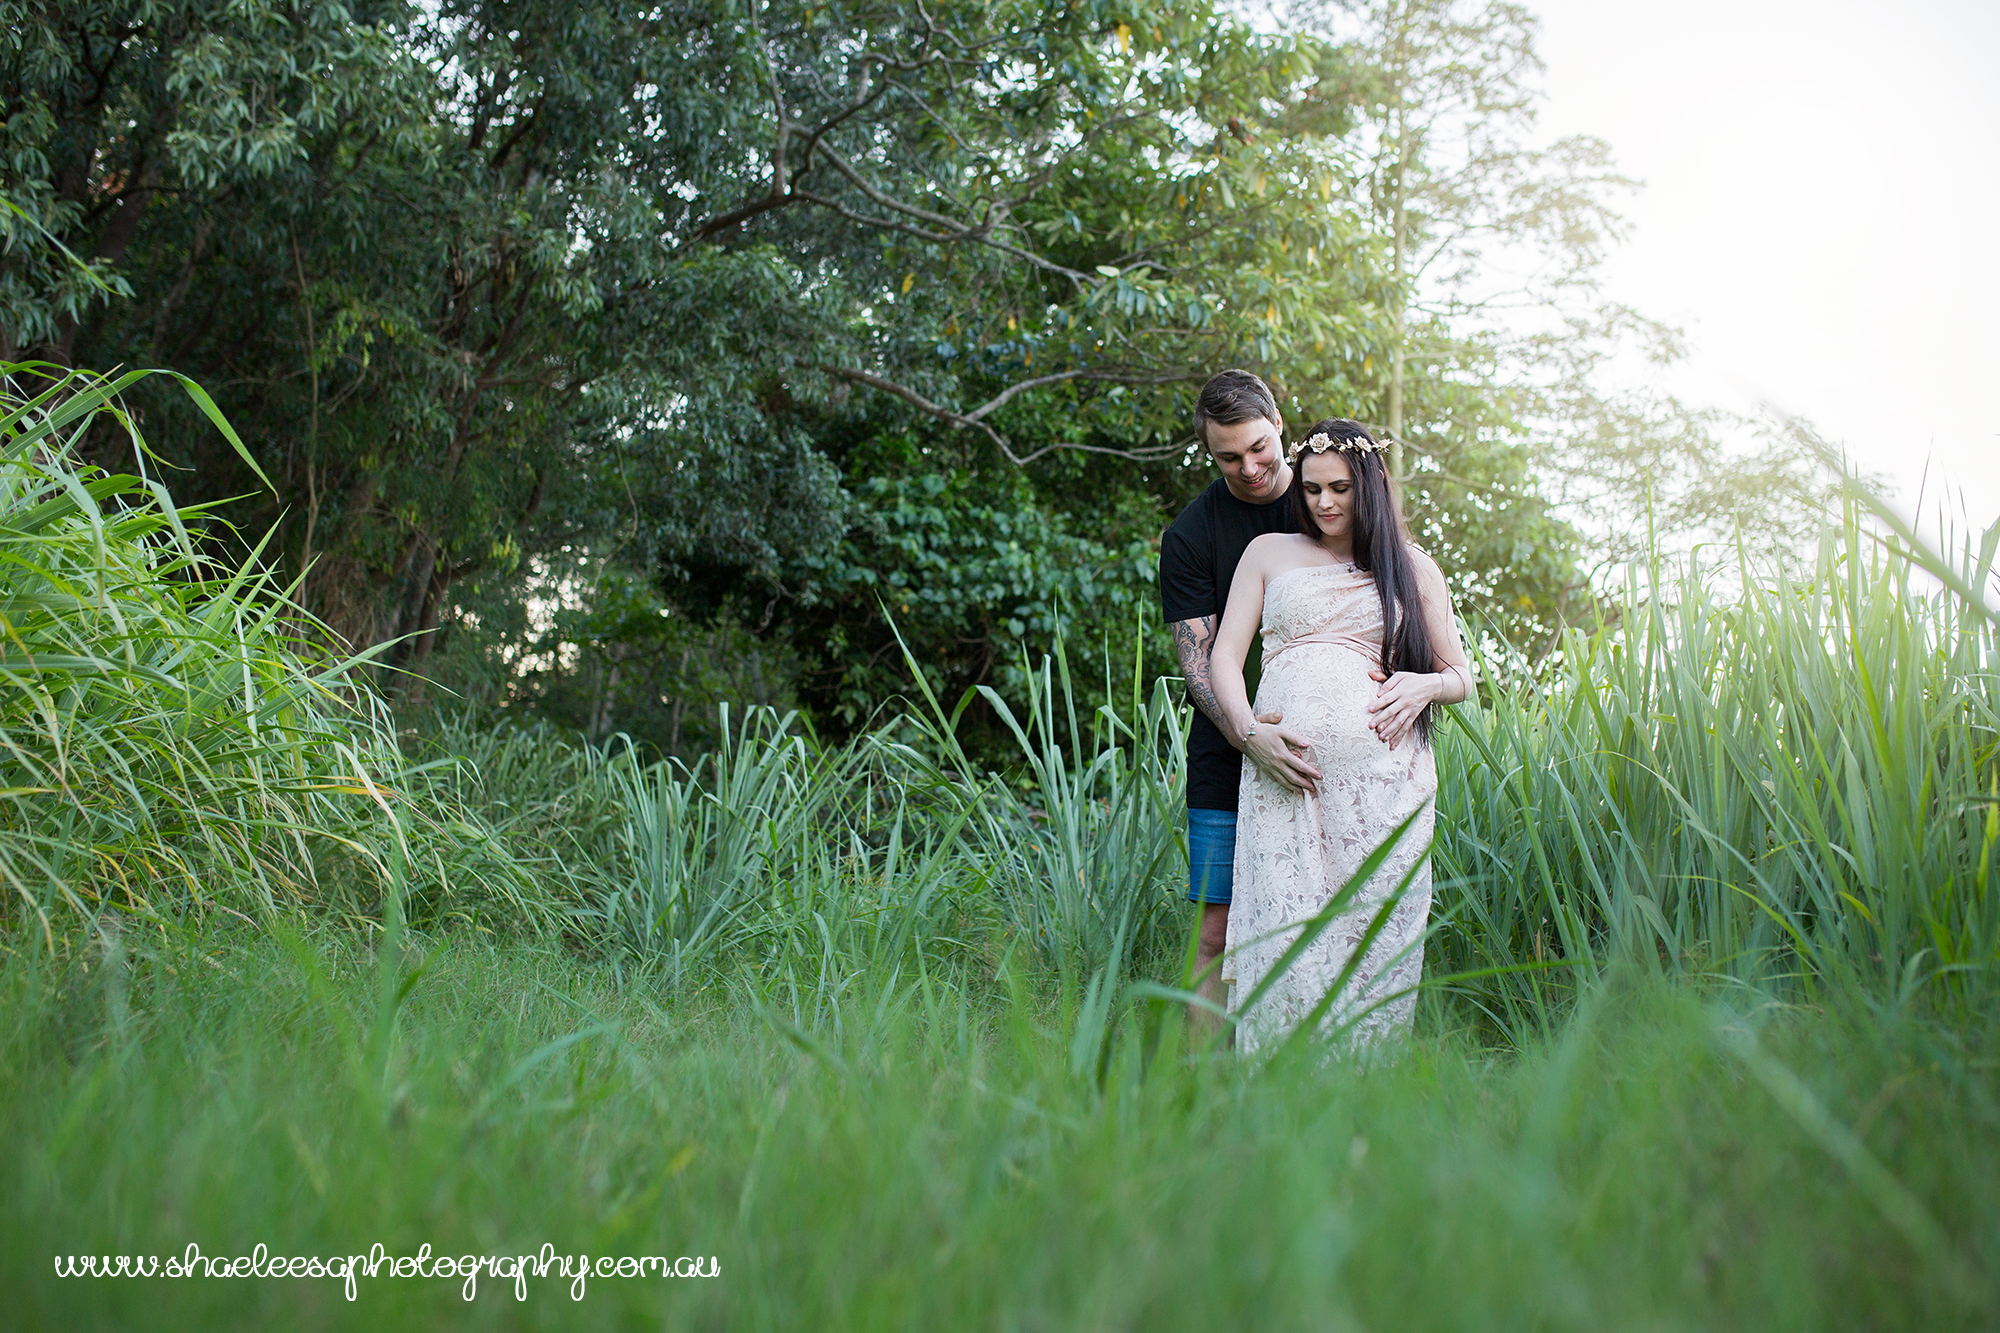 ShaeLeesaPhotography_012_SEALEY.jpg